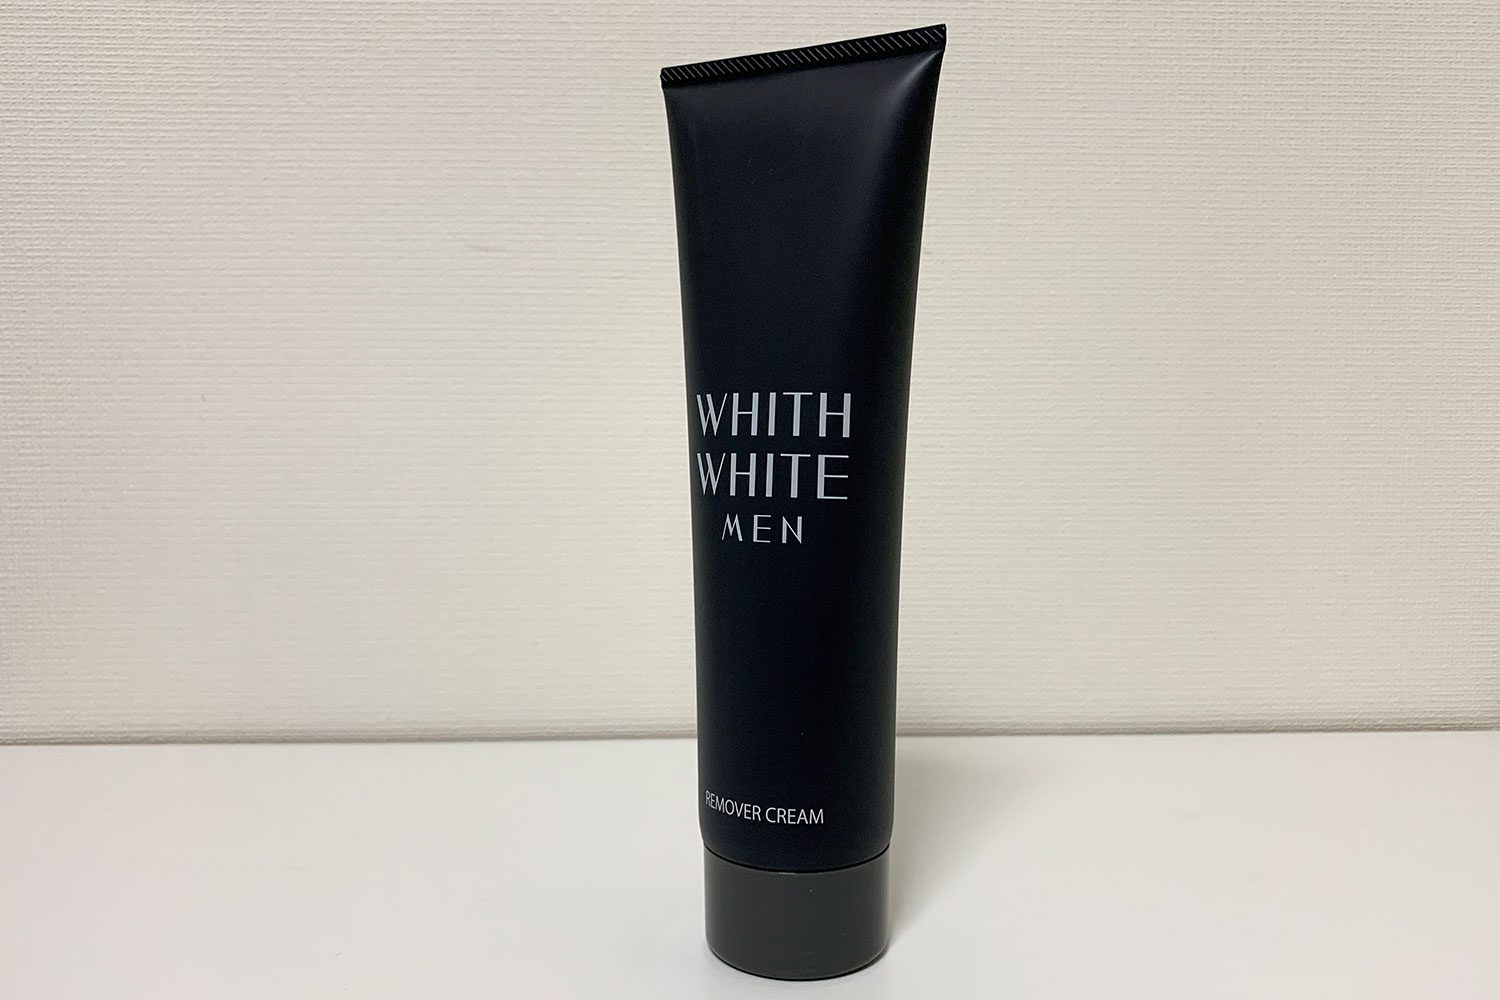 whith white 脱毛 クリーム メンズ